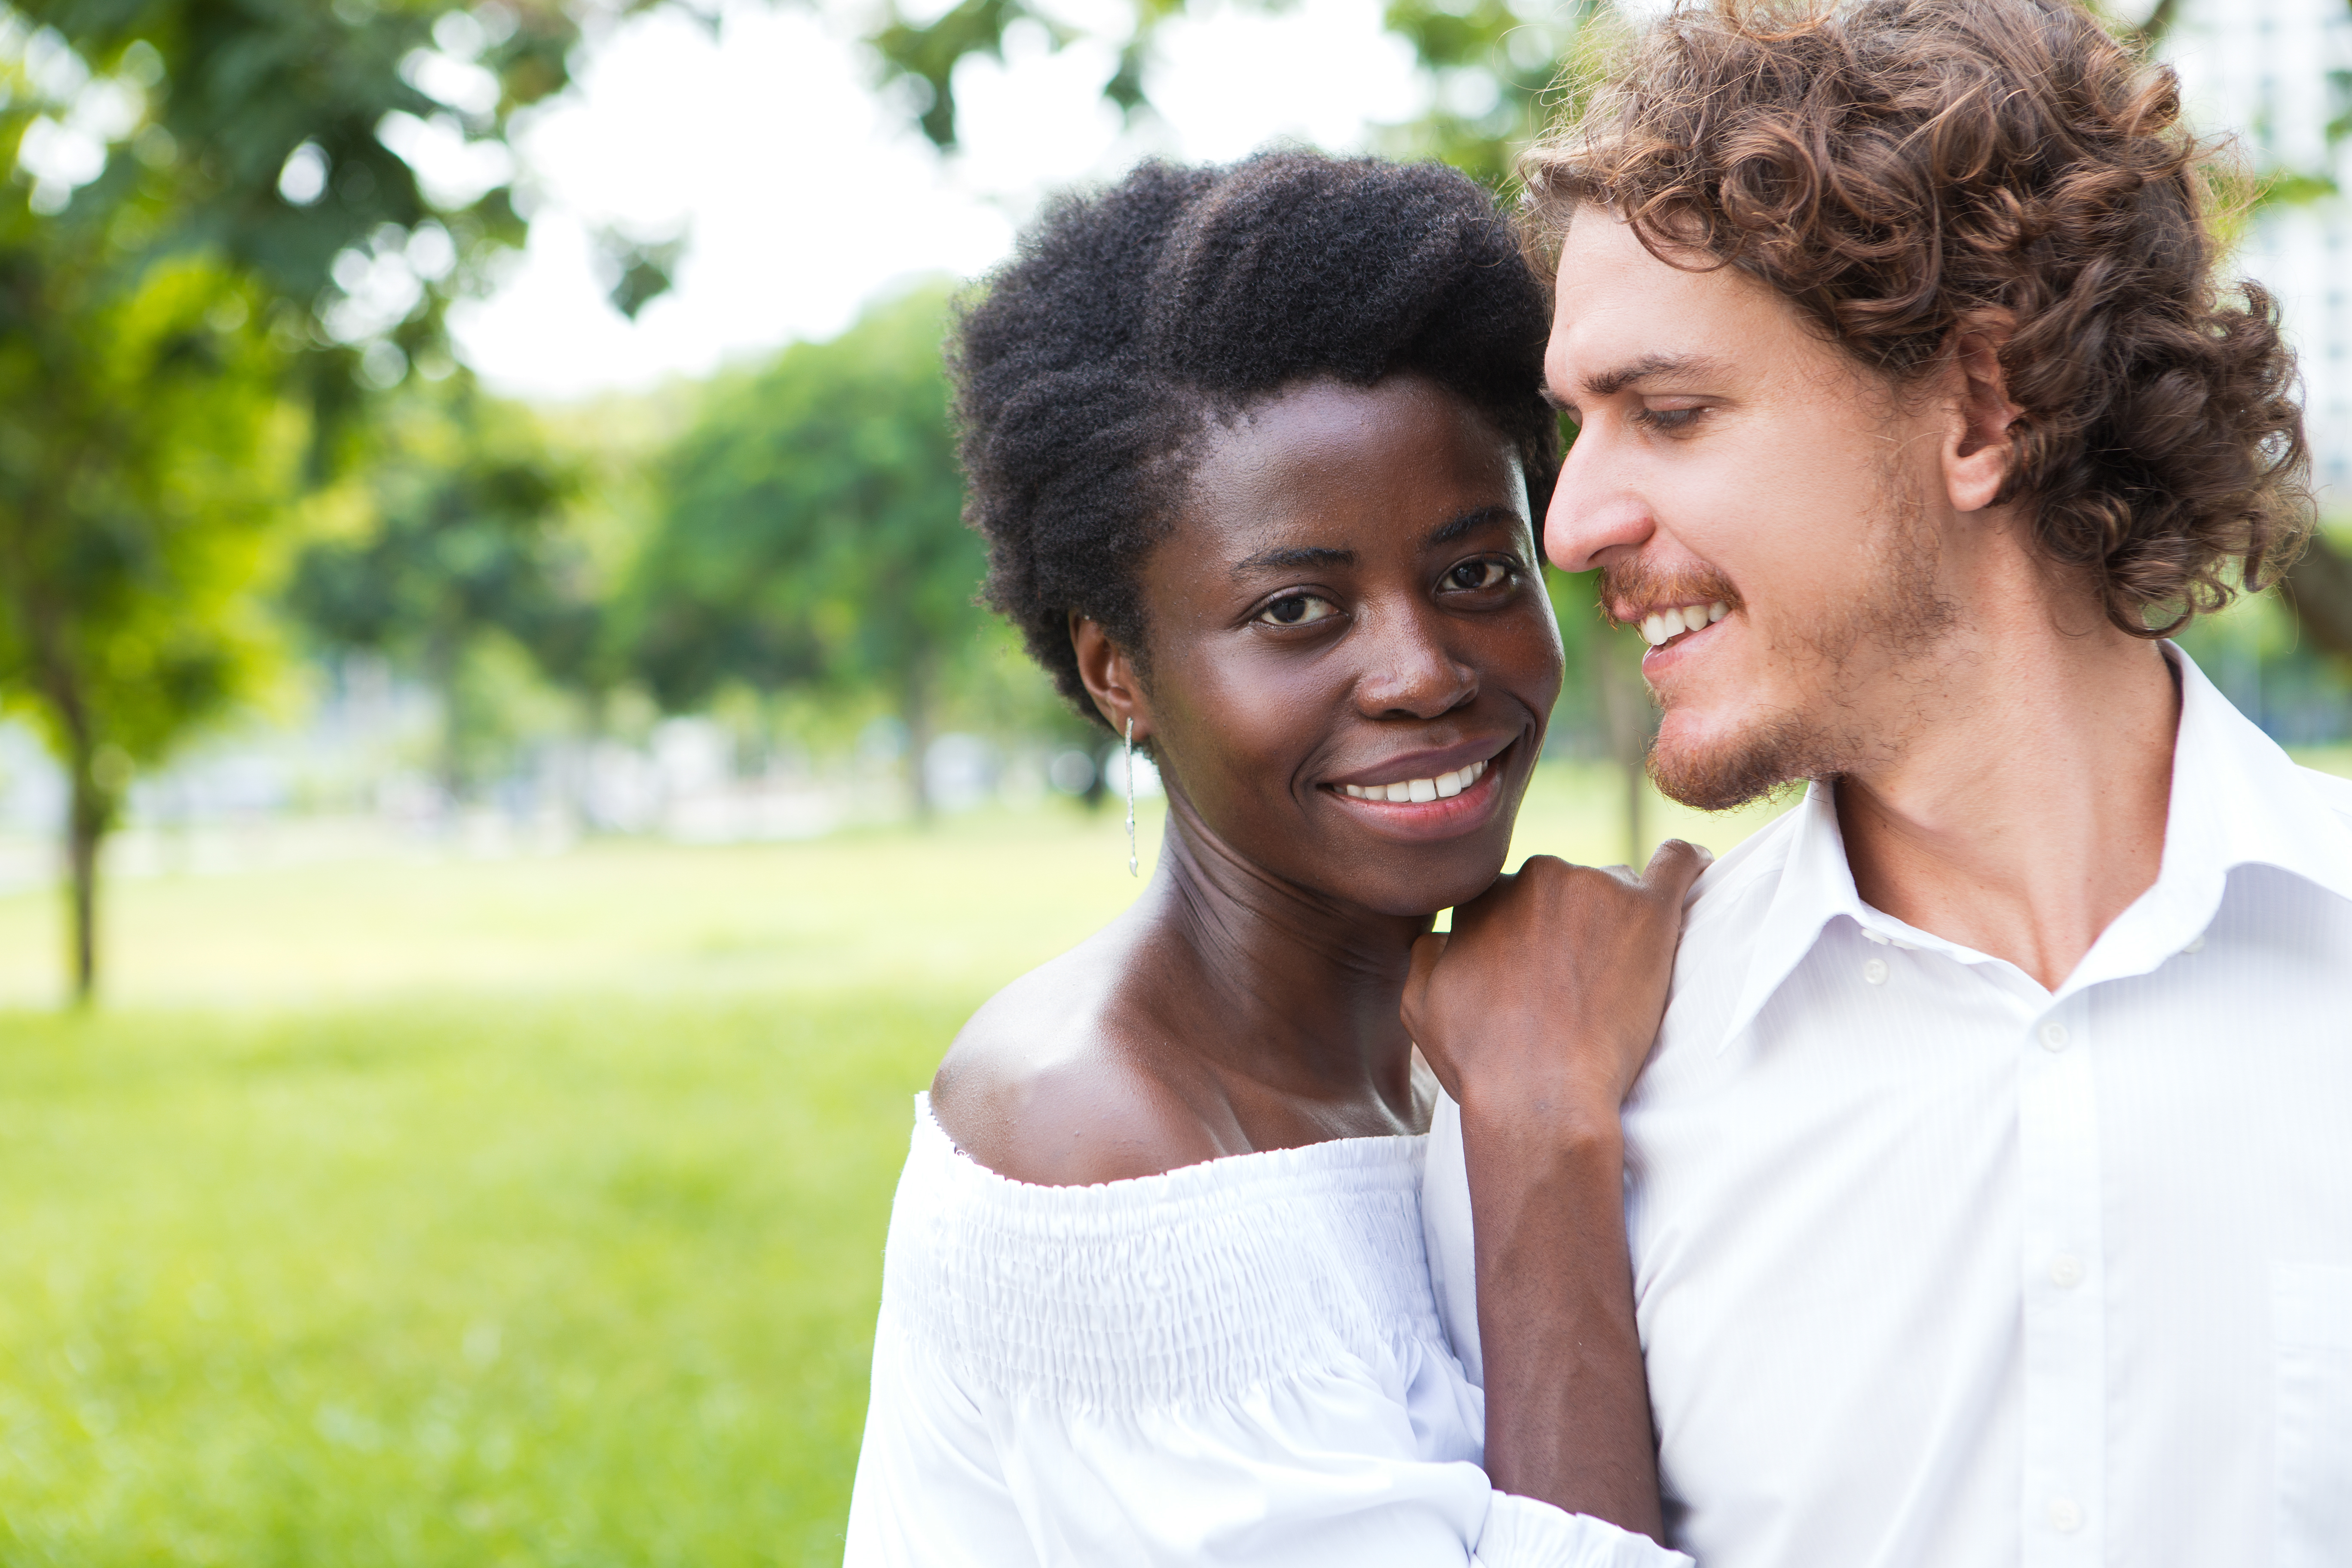 happy-young-man-looking-his-girlfriend-outdoors, biracial couple, happy couple smiling black and white